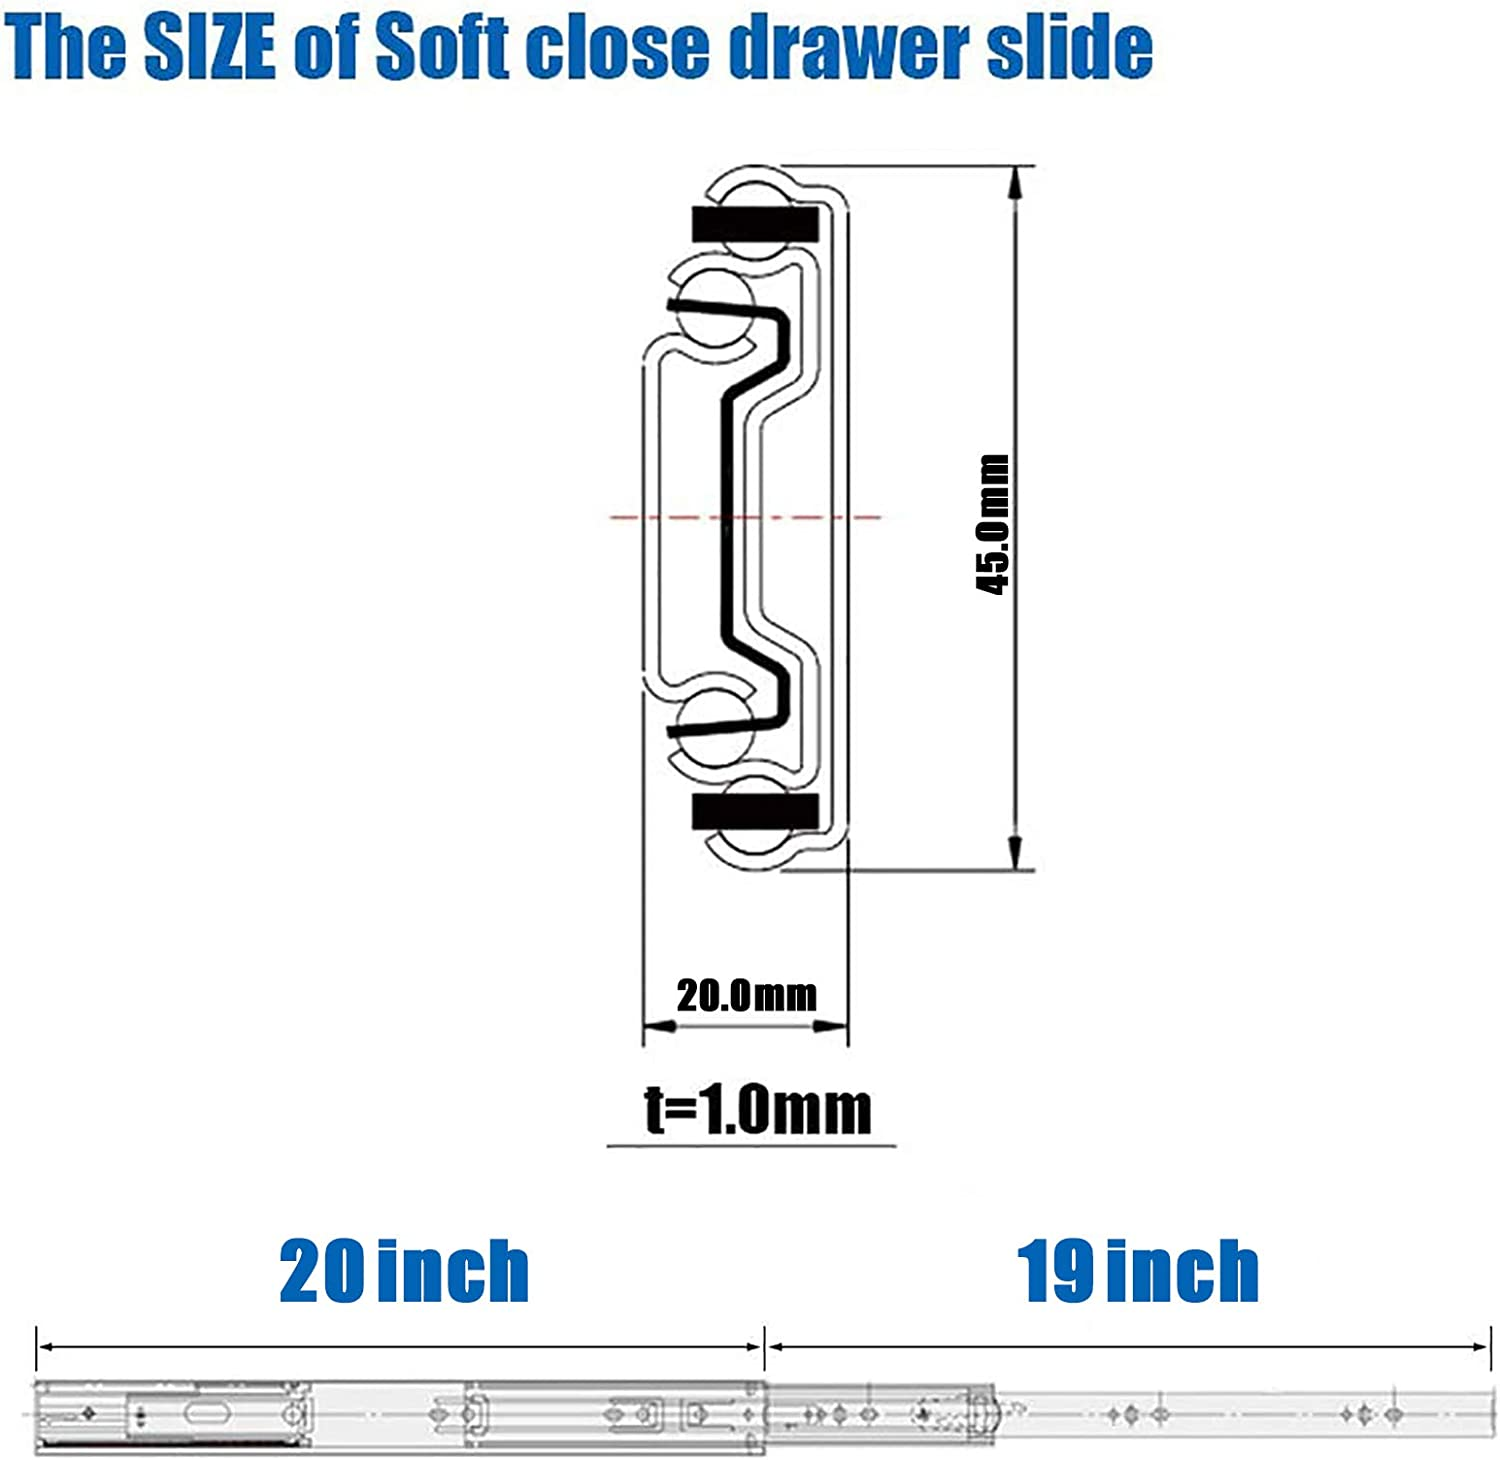 Draw Sliders Heavy Duty 45kg 1 Pair GLANZHAUS 20 inch 500MM Metal Ball Bearing Soft Close Drawer Runners 3-Section Fold Extension